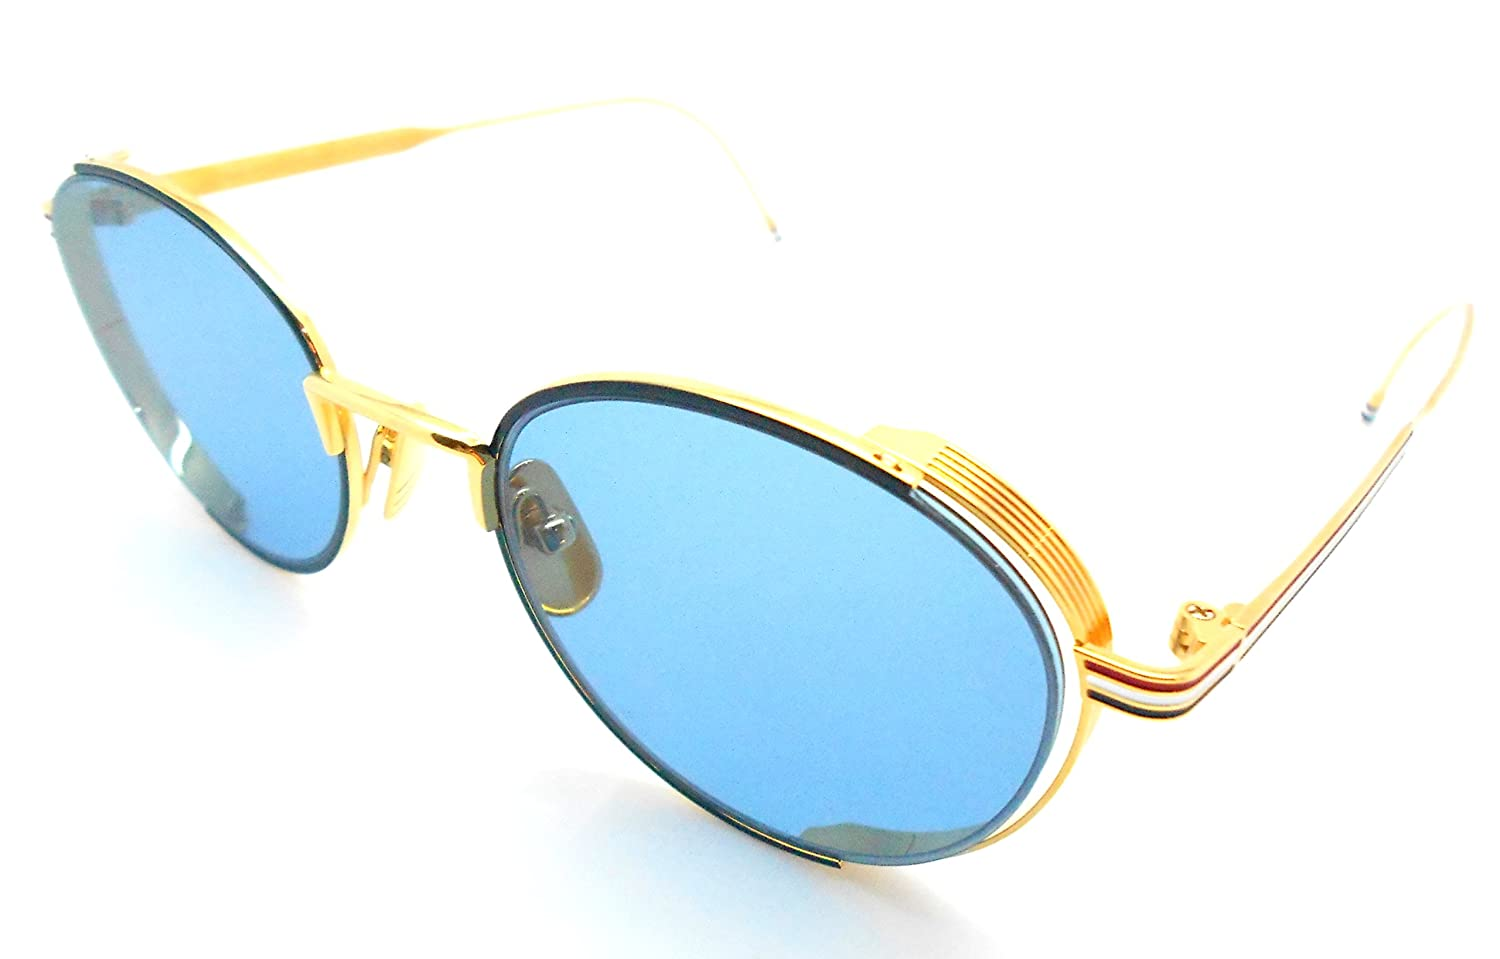 58135b3bee63 Amazon.com  Thom Browne TB-106-Navy- Gold with Blue lenses Sunglasses   Clothing